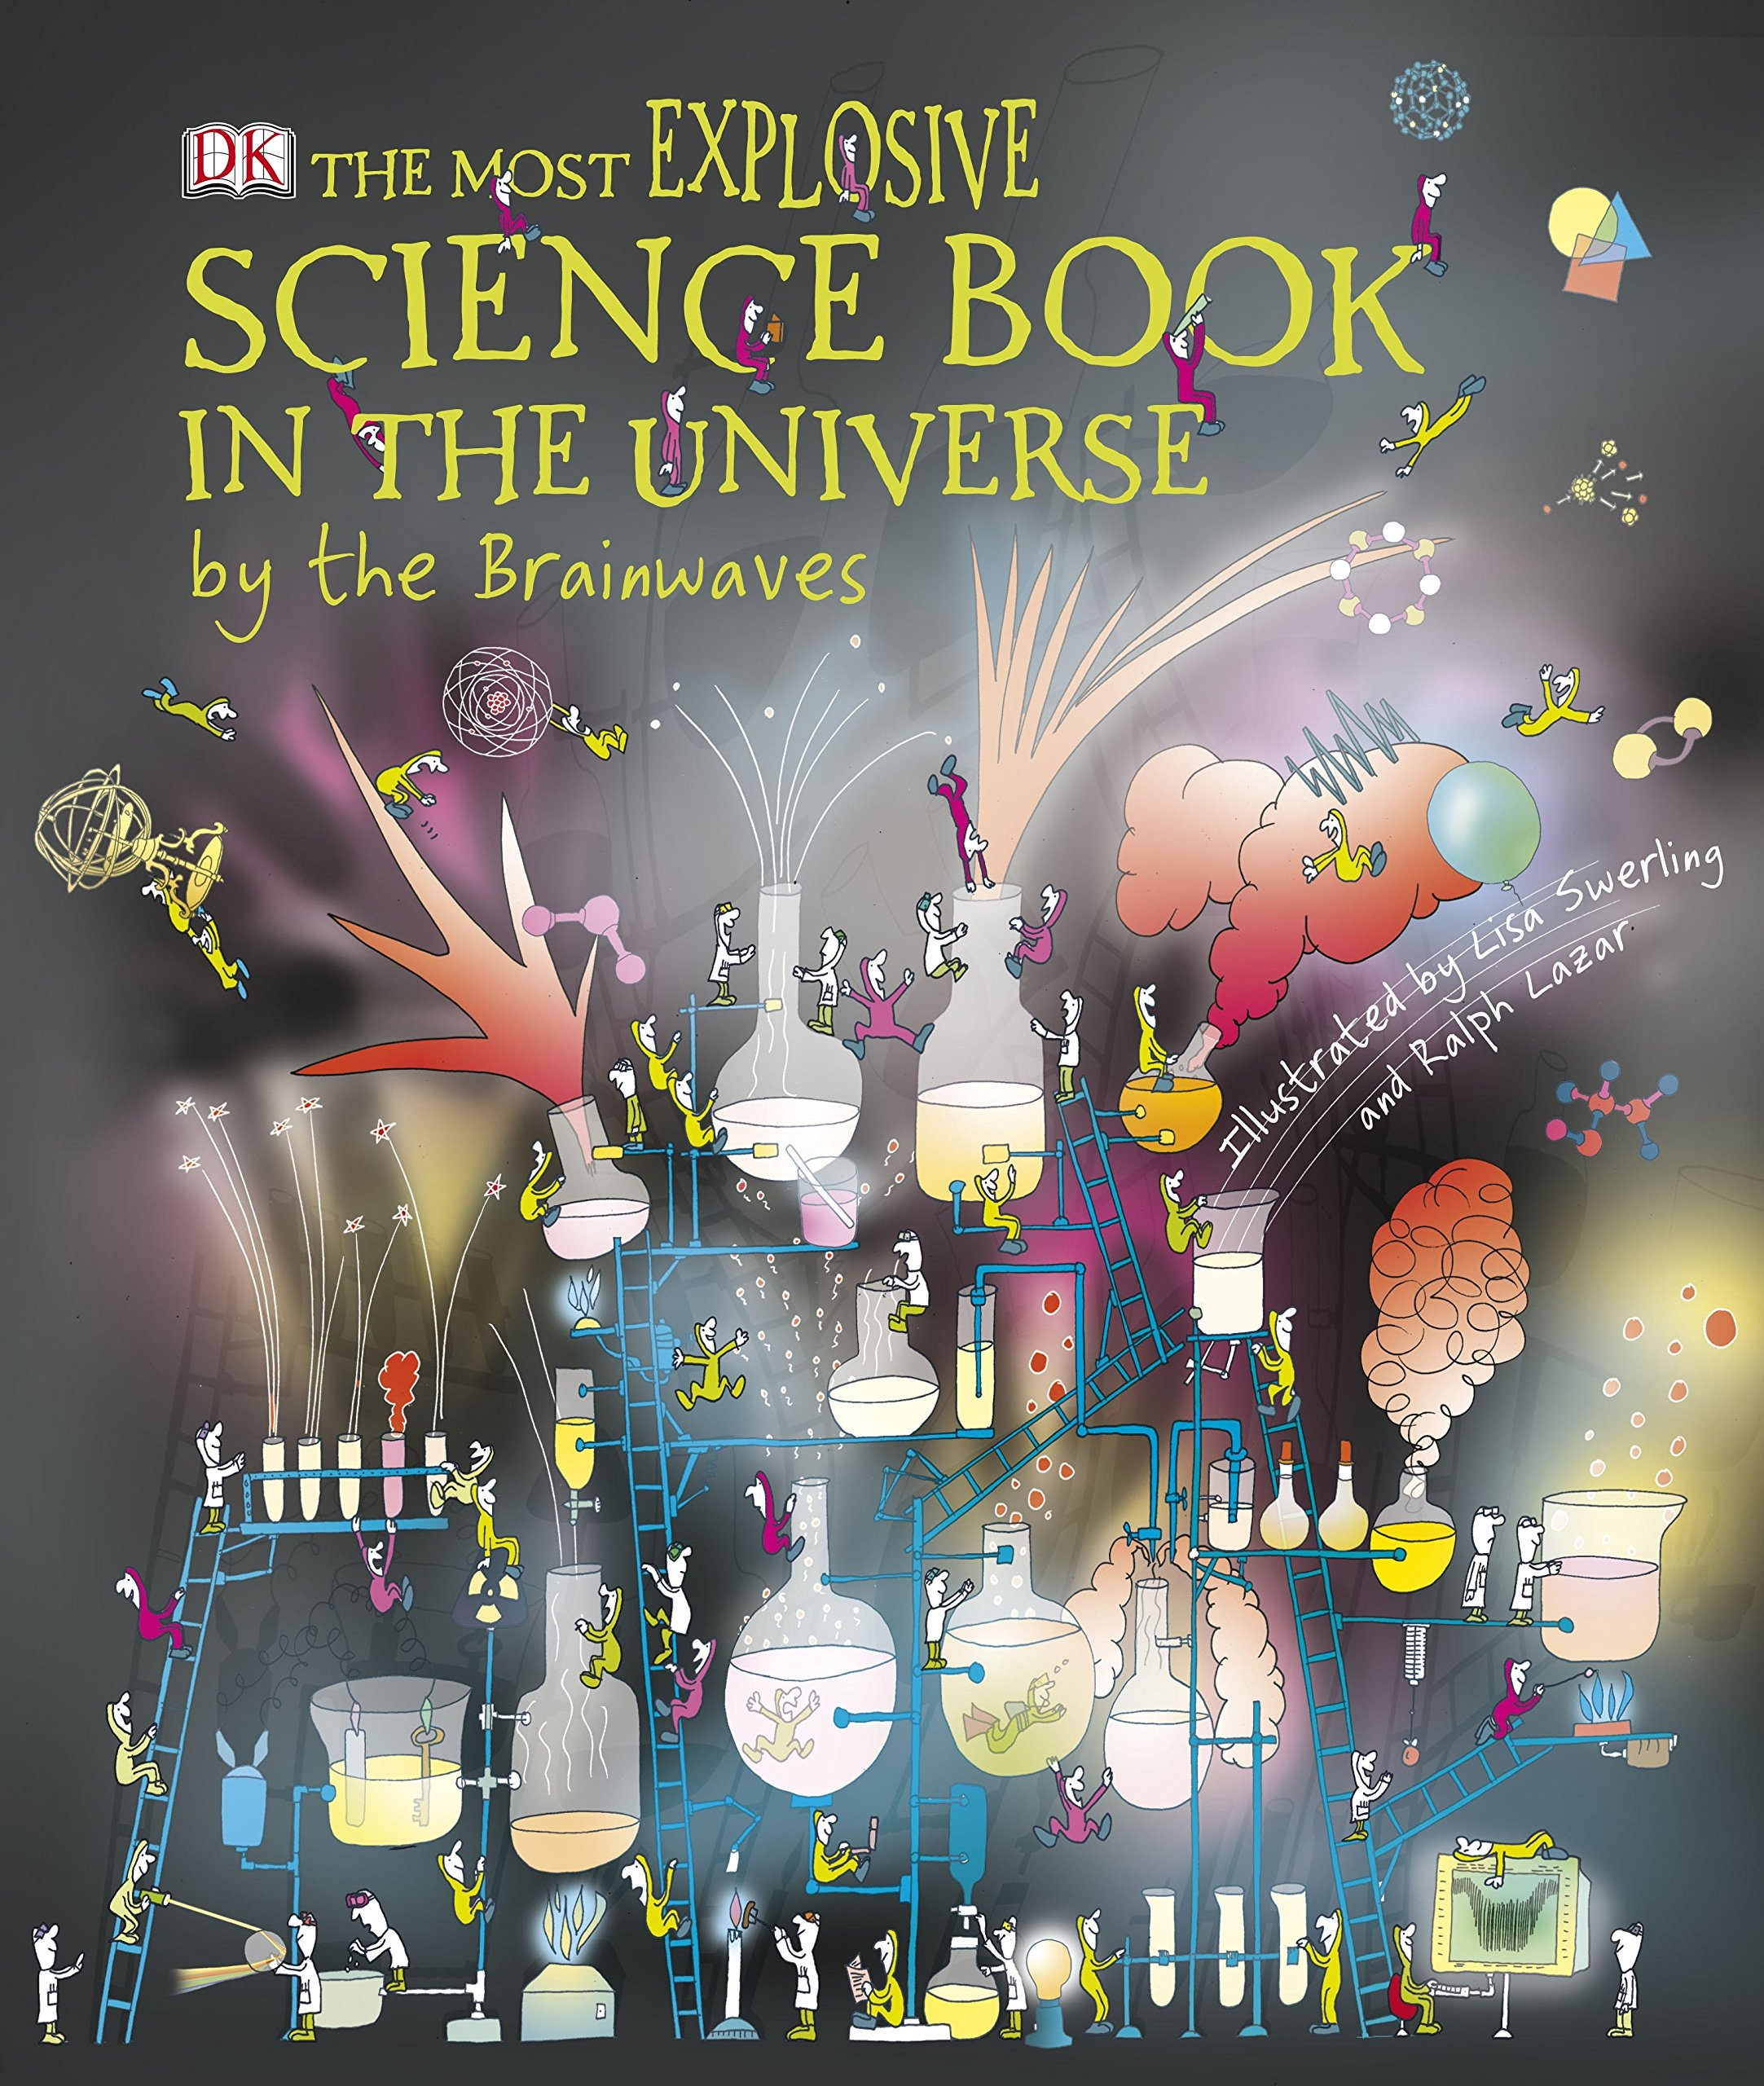 The Most Explosive Science Book in the Universe. by the Brainwaves PDF